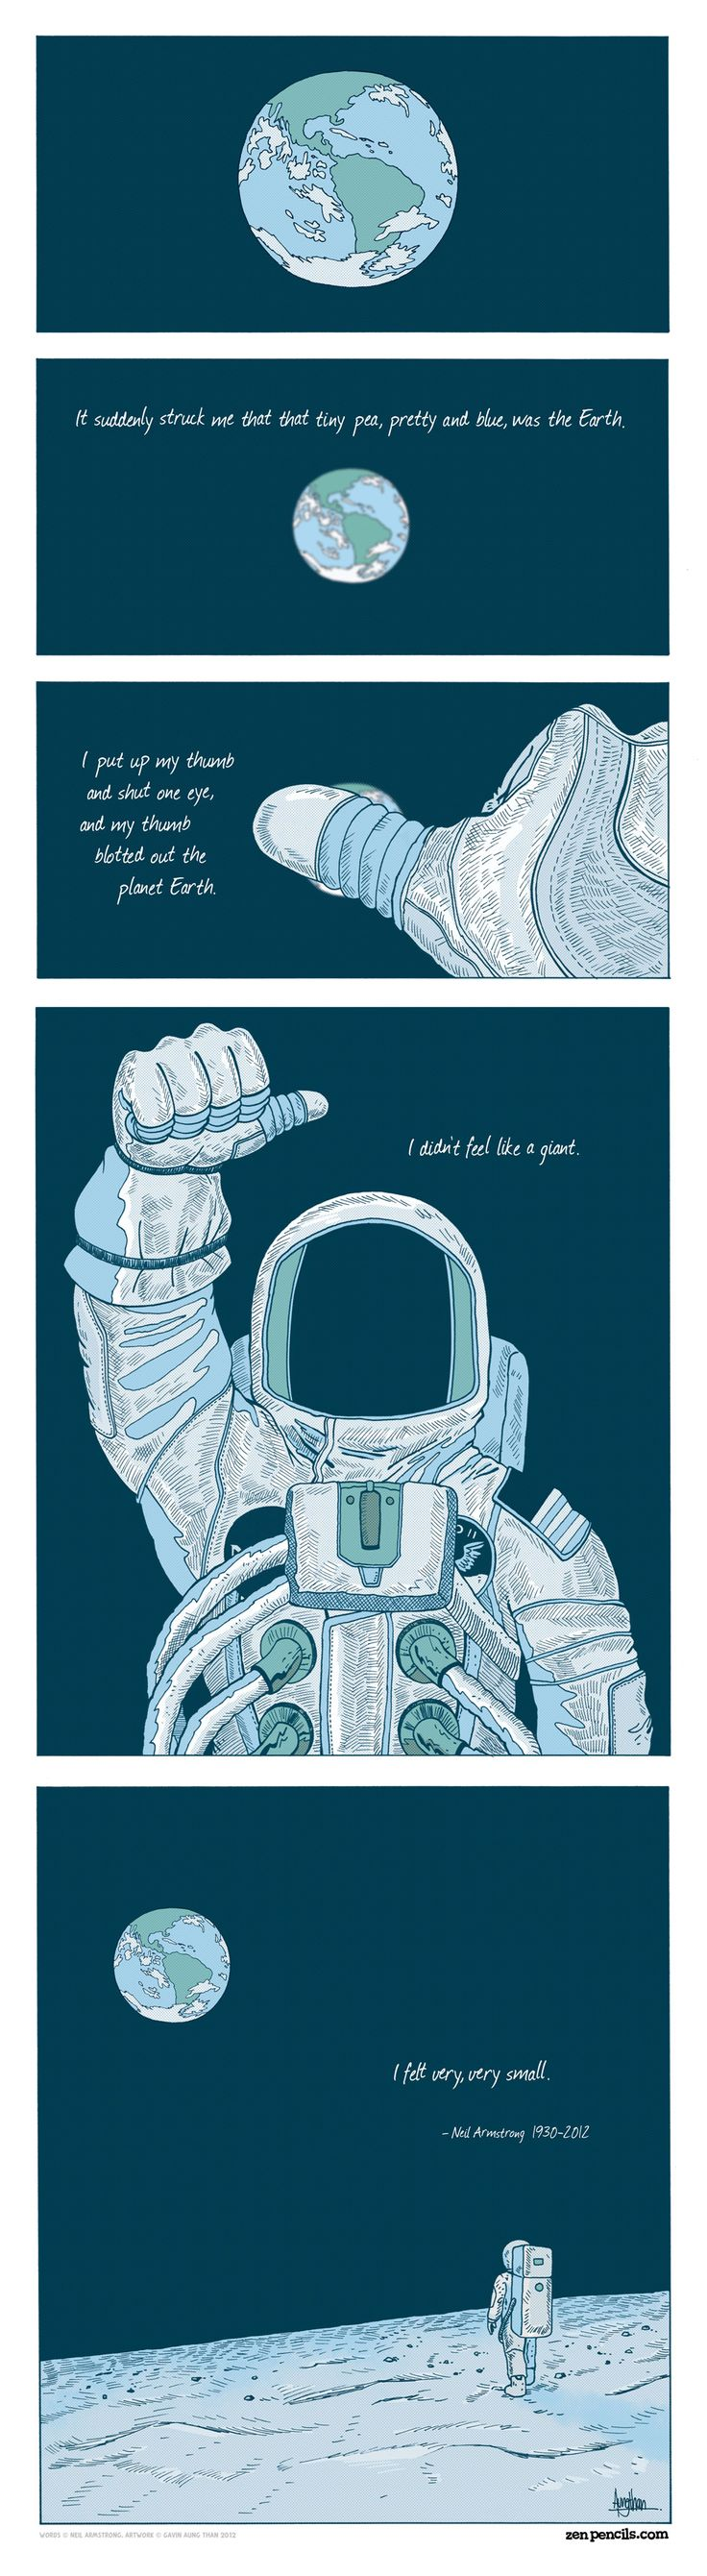 Neil Armstrong 1930 - 2012